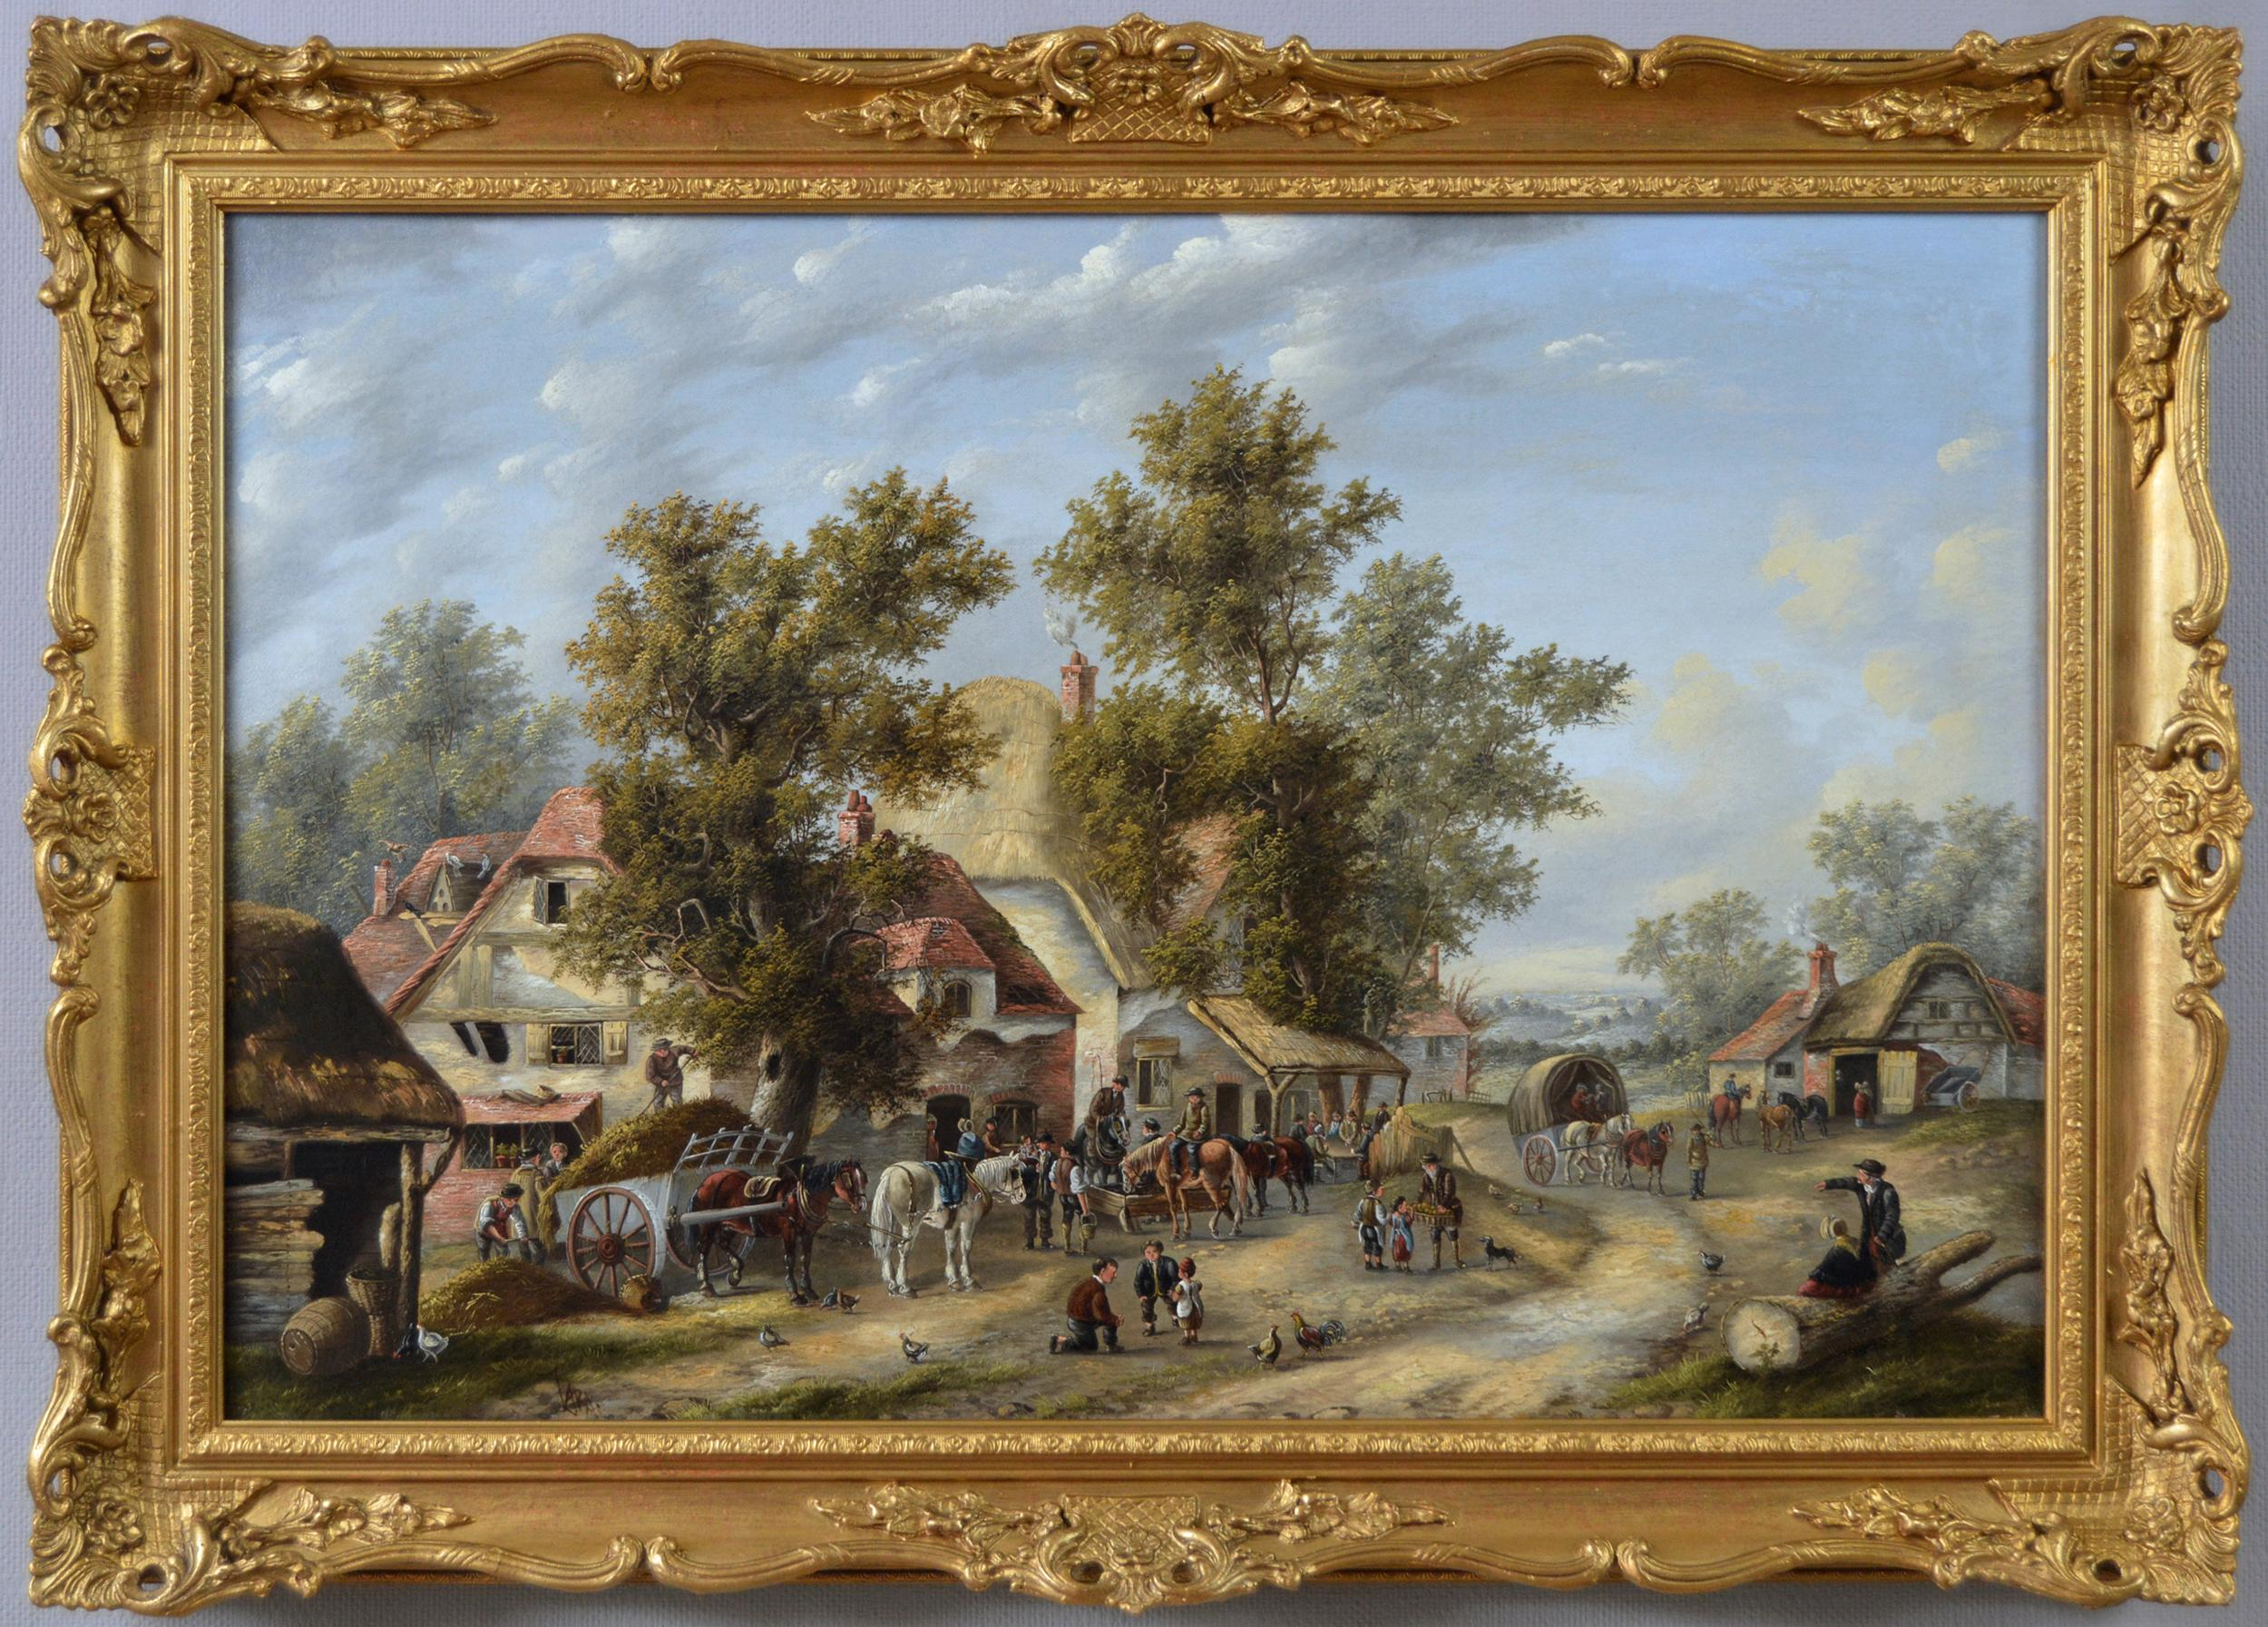 19th Century landscape oil painting of a busy village